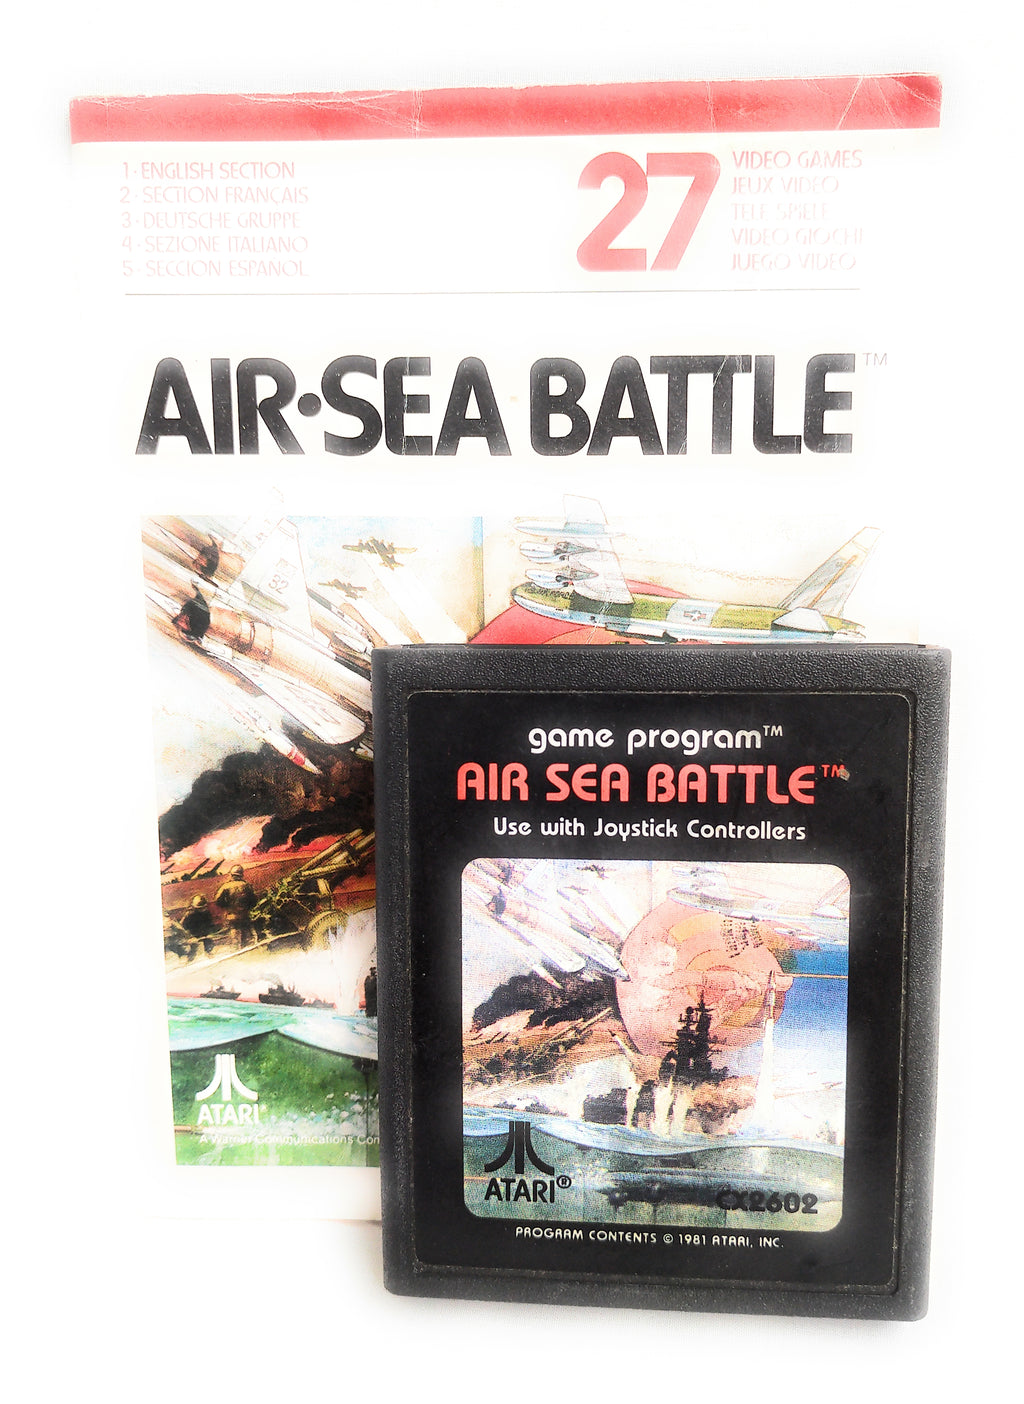 Air Sea Battle for the Atari 2600 / 7800 Console  Complete with manual